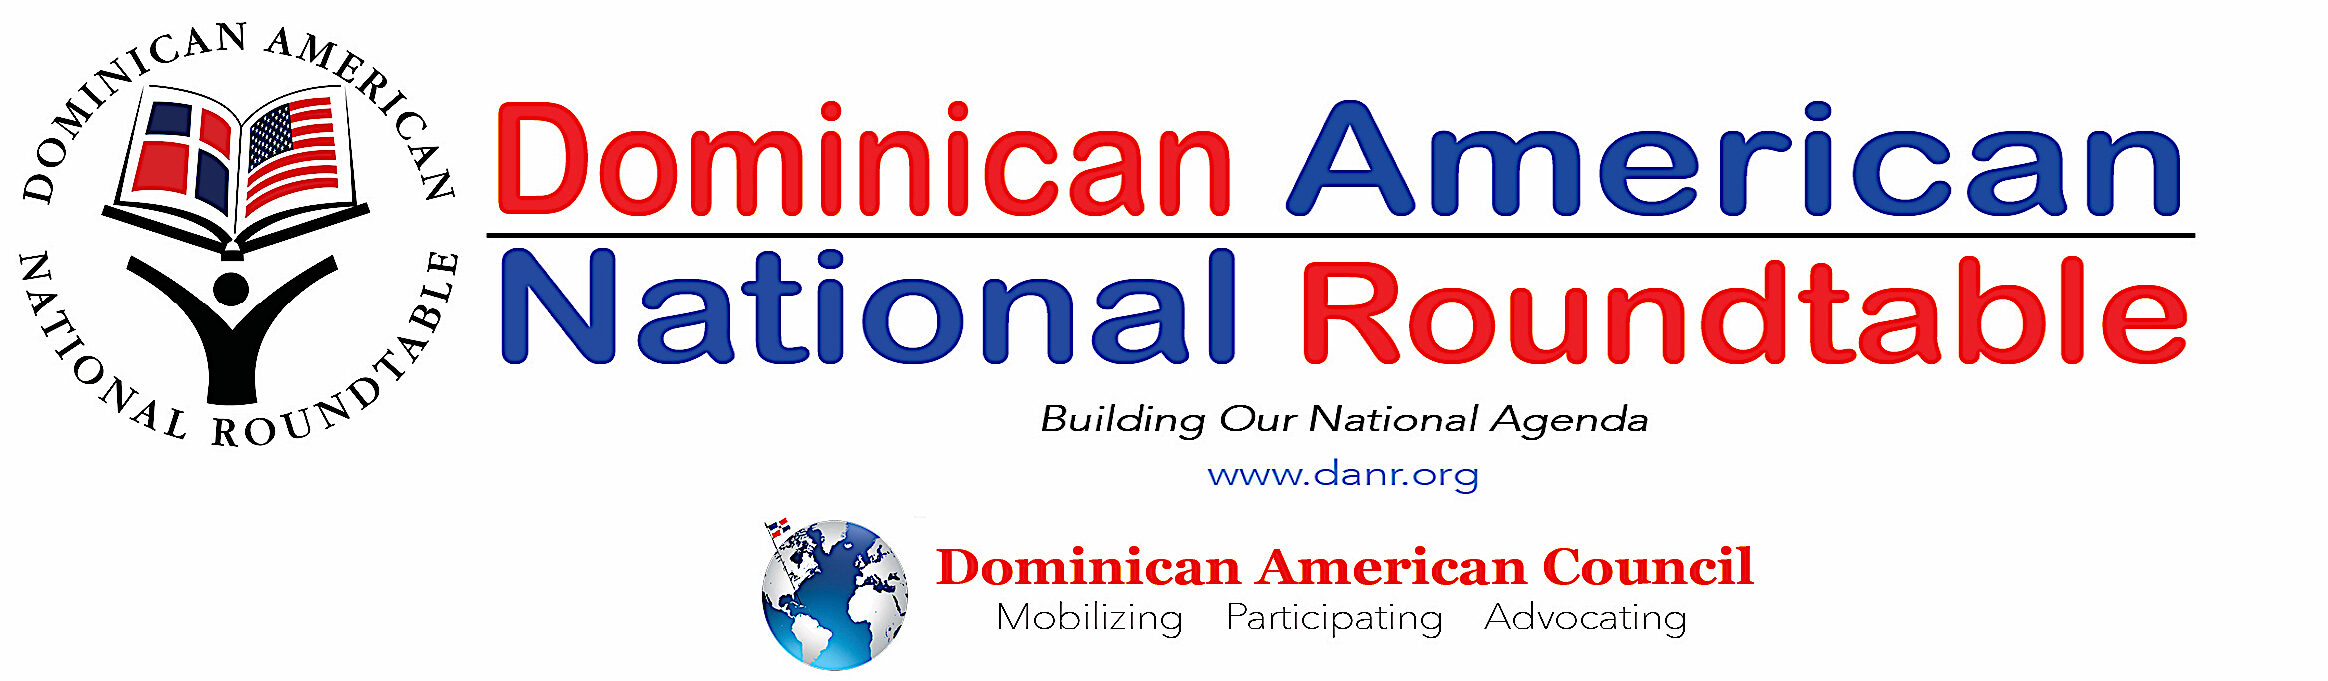 Dominican American National Roundtable – DANR